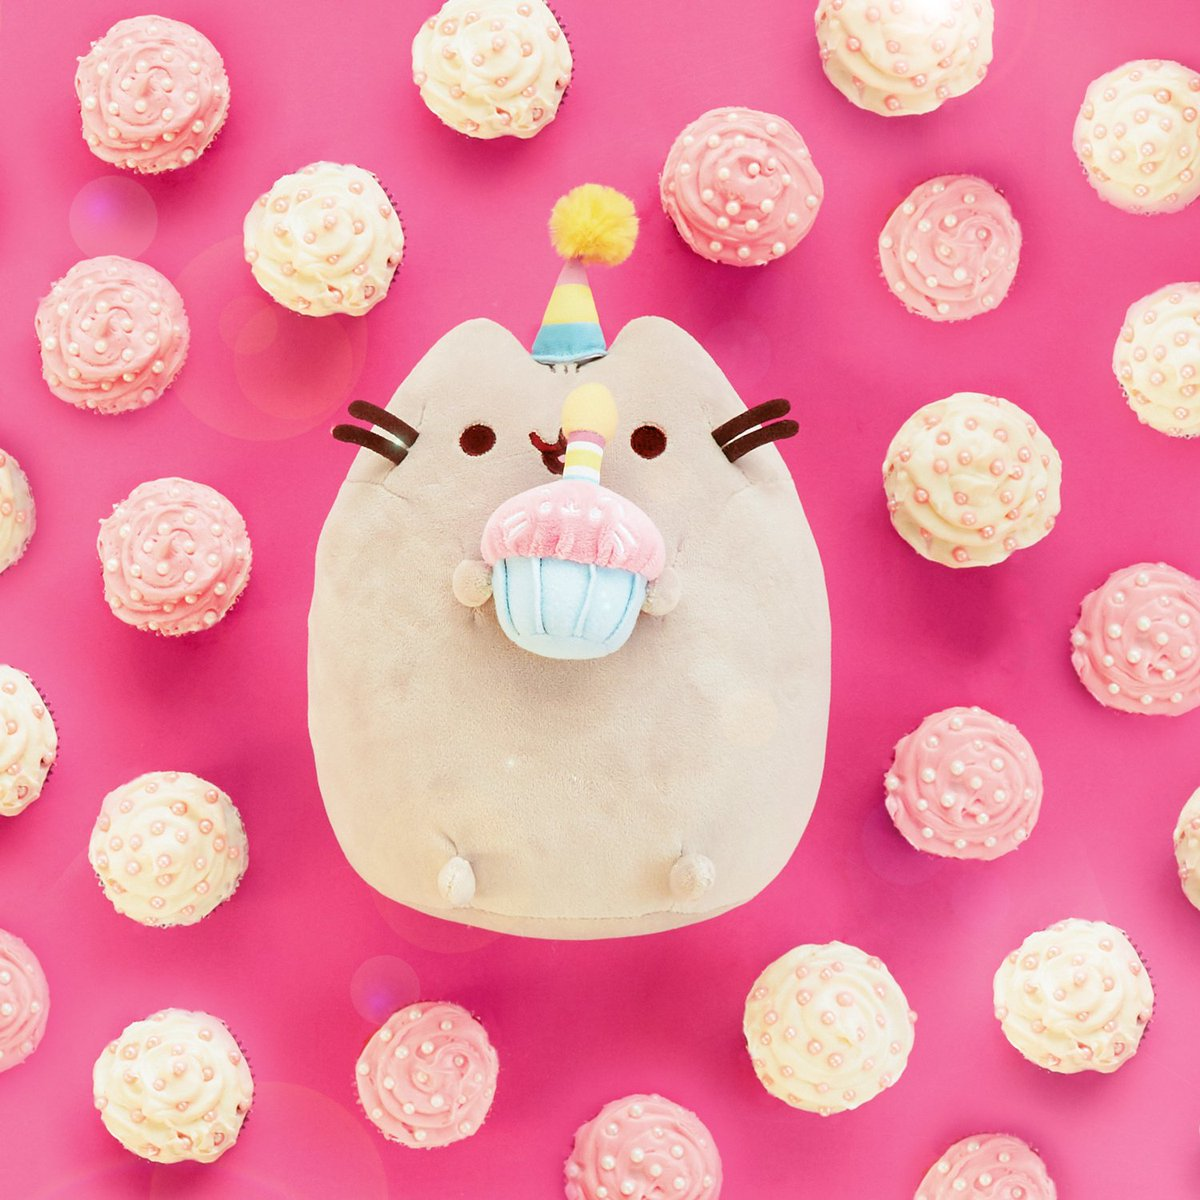 Claire S On Twitter Happy Birthday To Our Fave Tabby Cat Pusheen